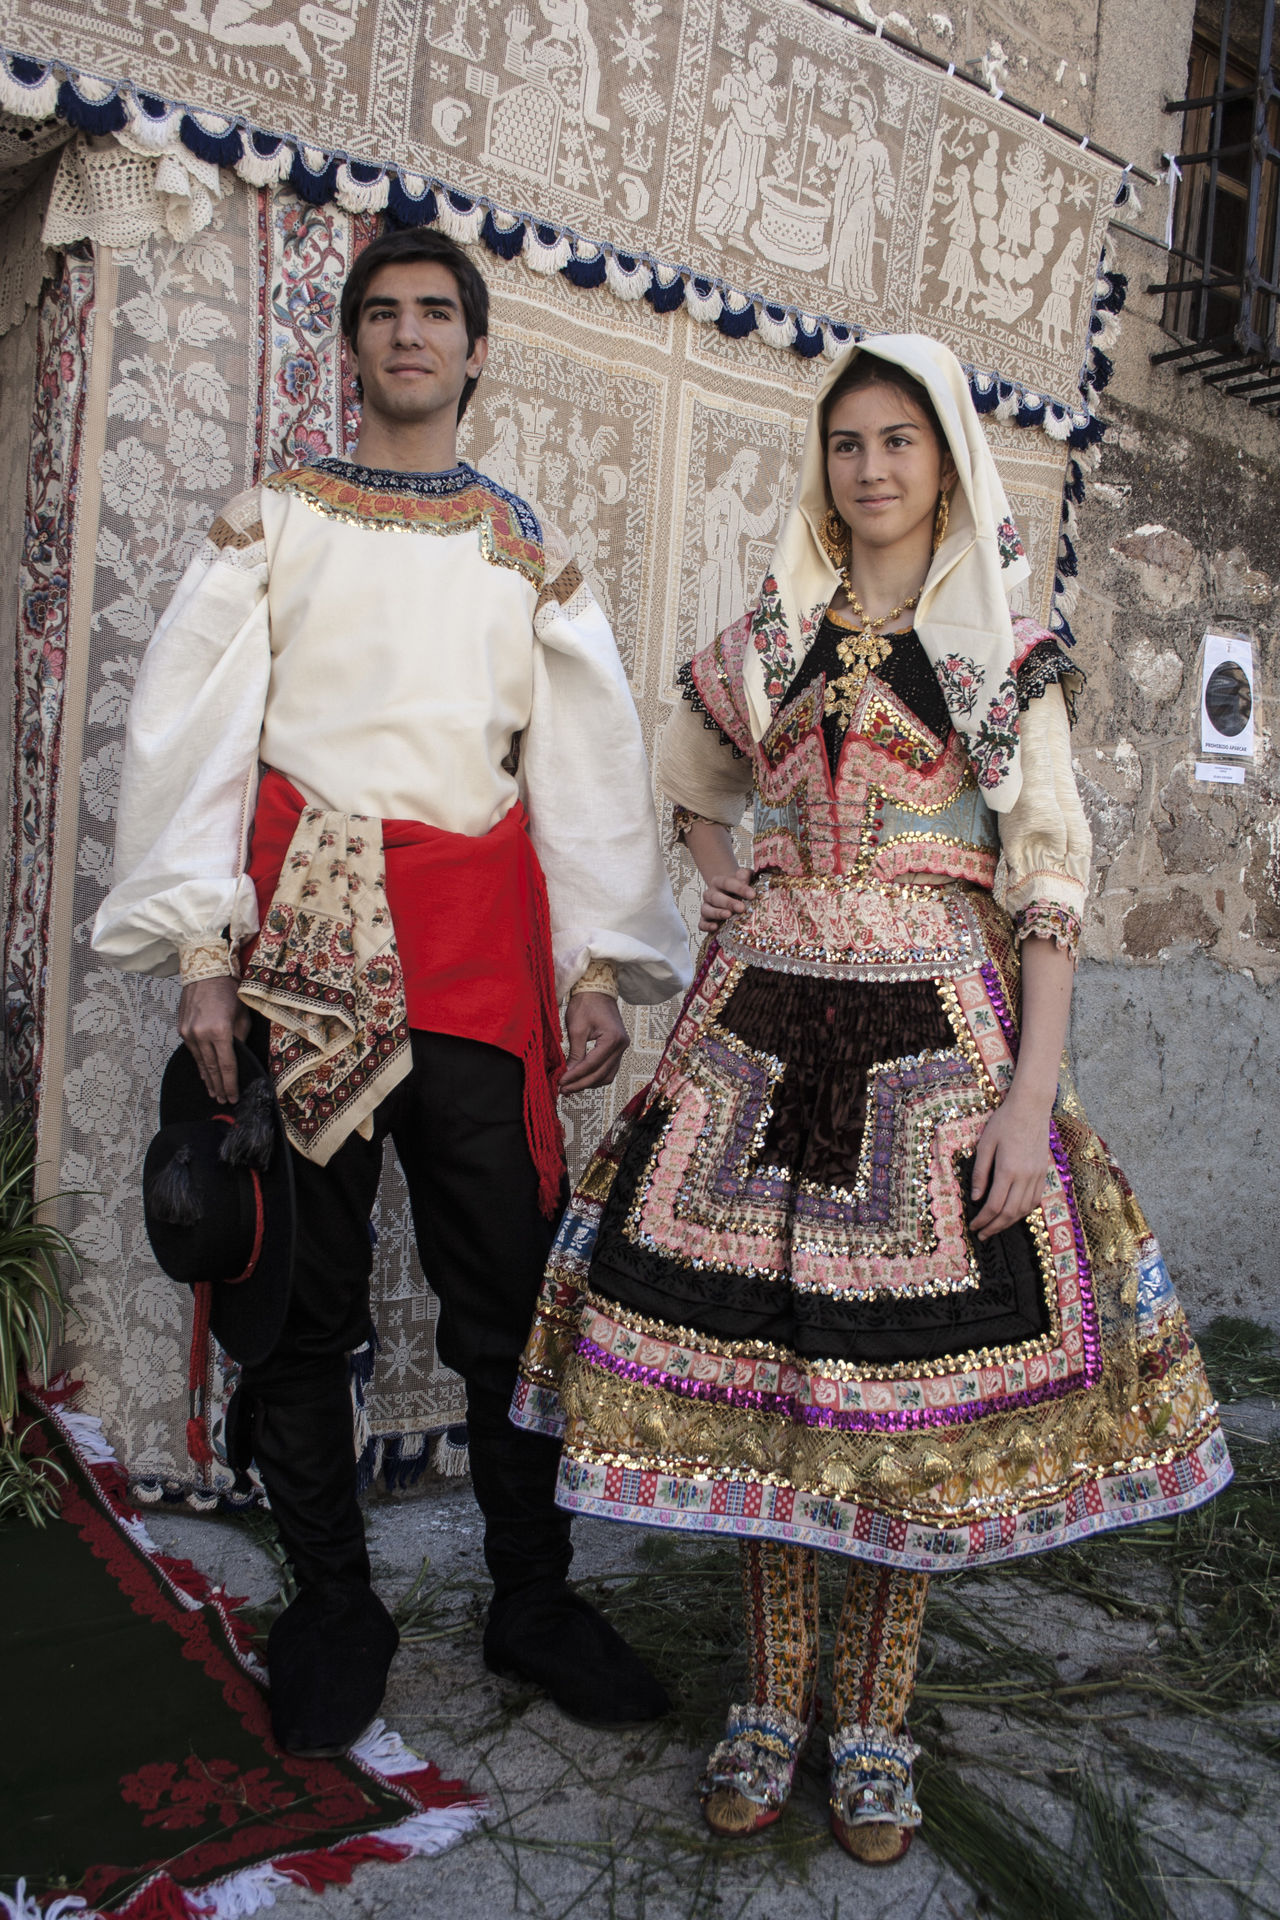 Architecture Cultures Day Front View Full Length Happiness Lagartera Lagartera Costumes Lagarterana Looking At Camera Outdoors People Portrait Real People Sari Smiling Standing Togetherness Traditional Clothing Two People Young Adult Young Women